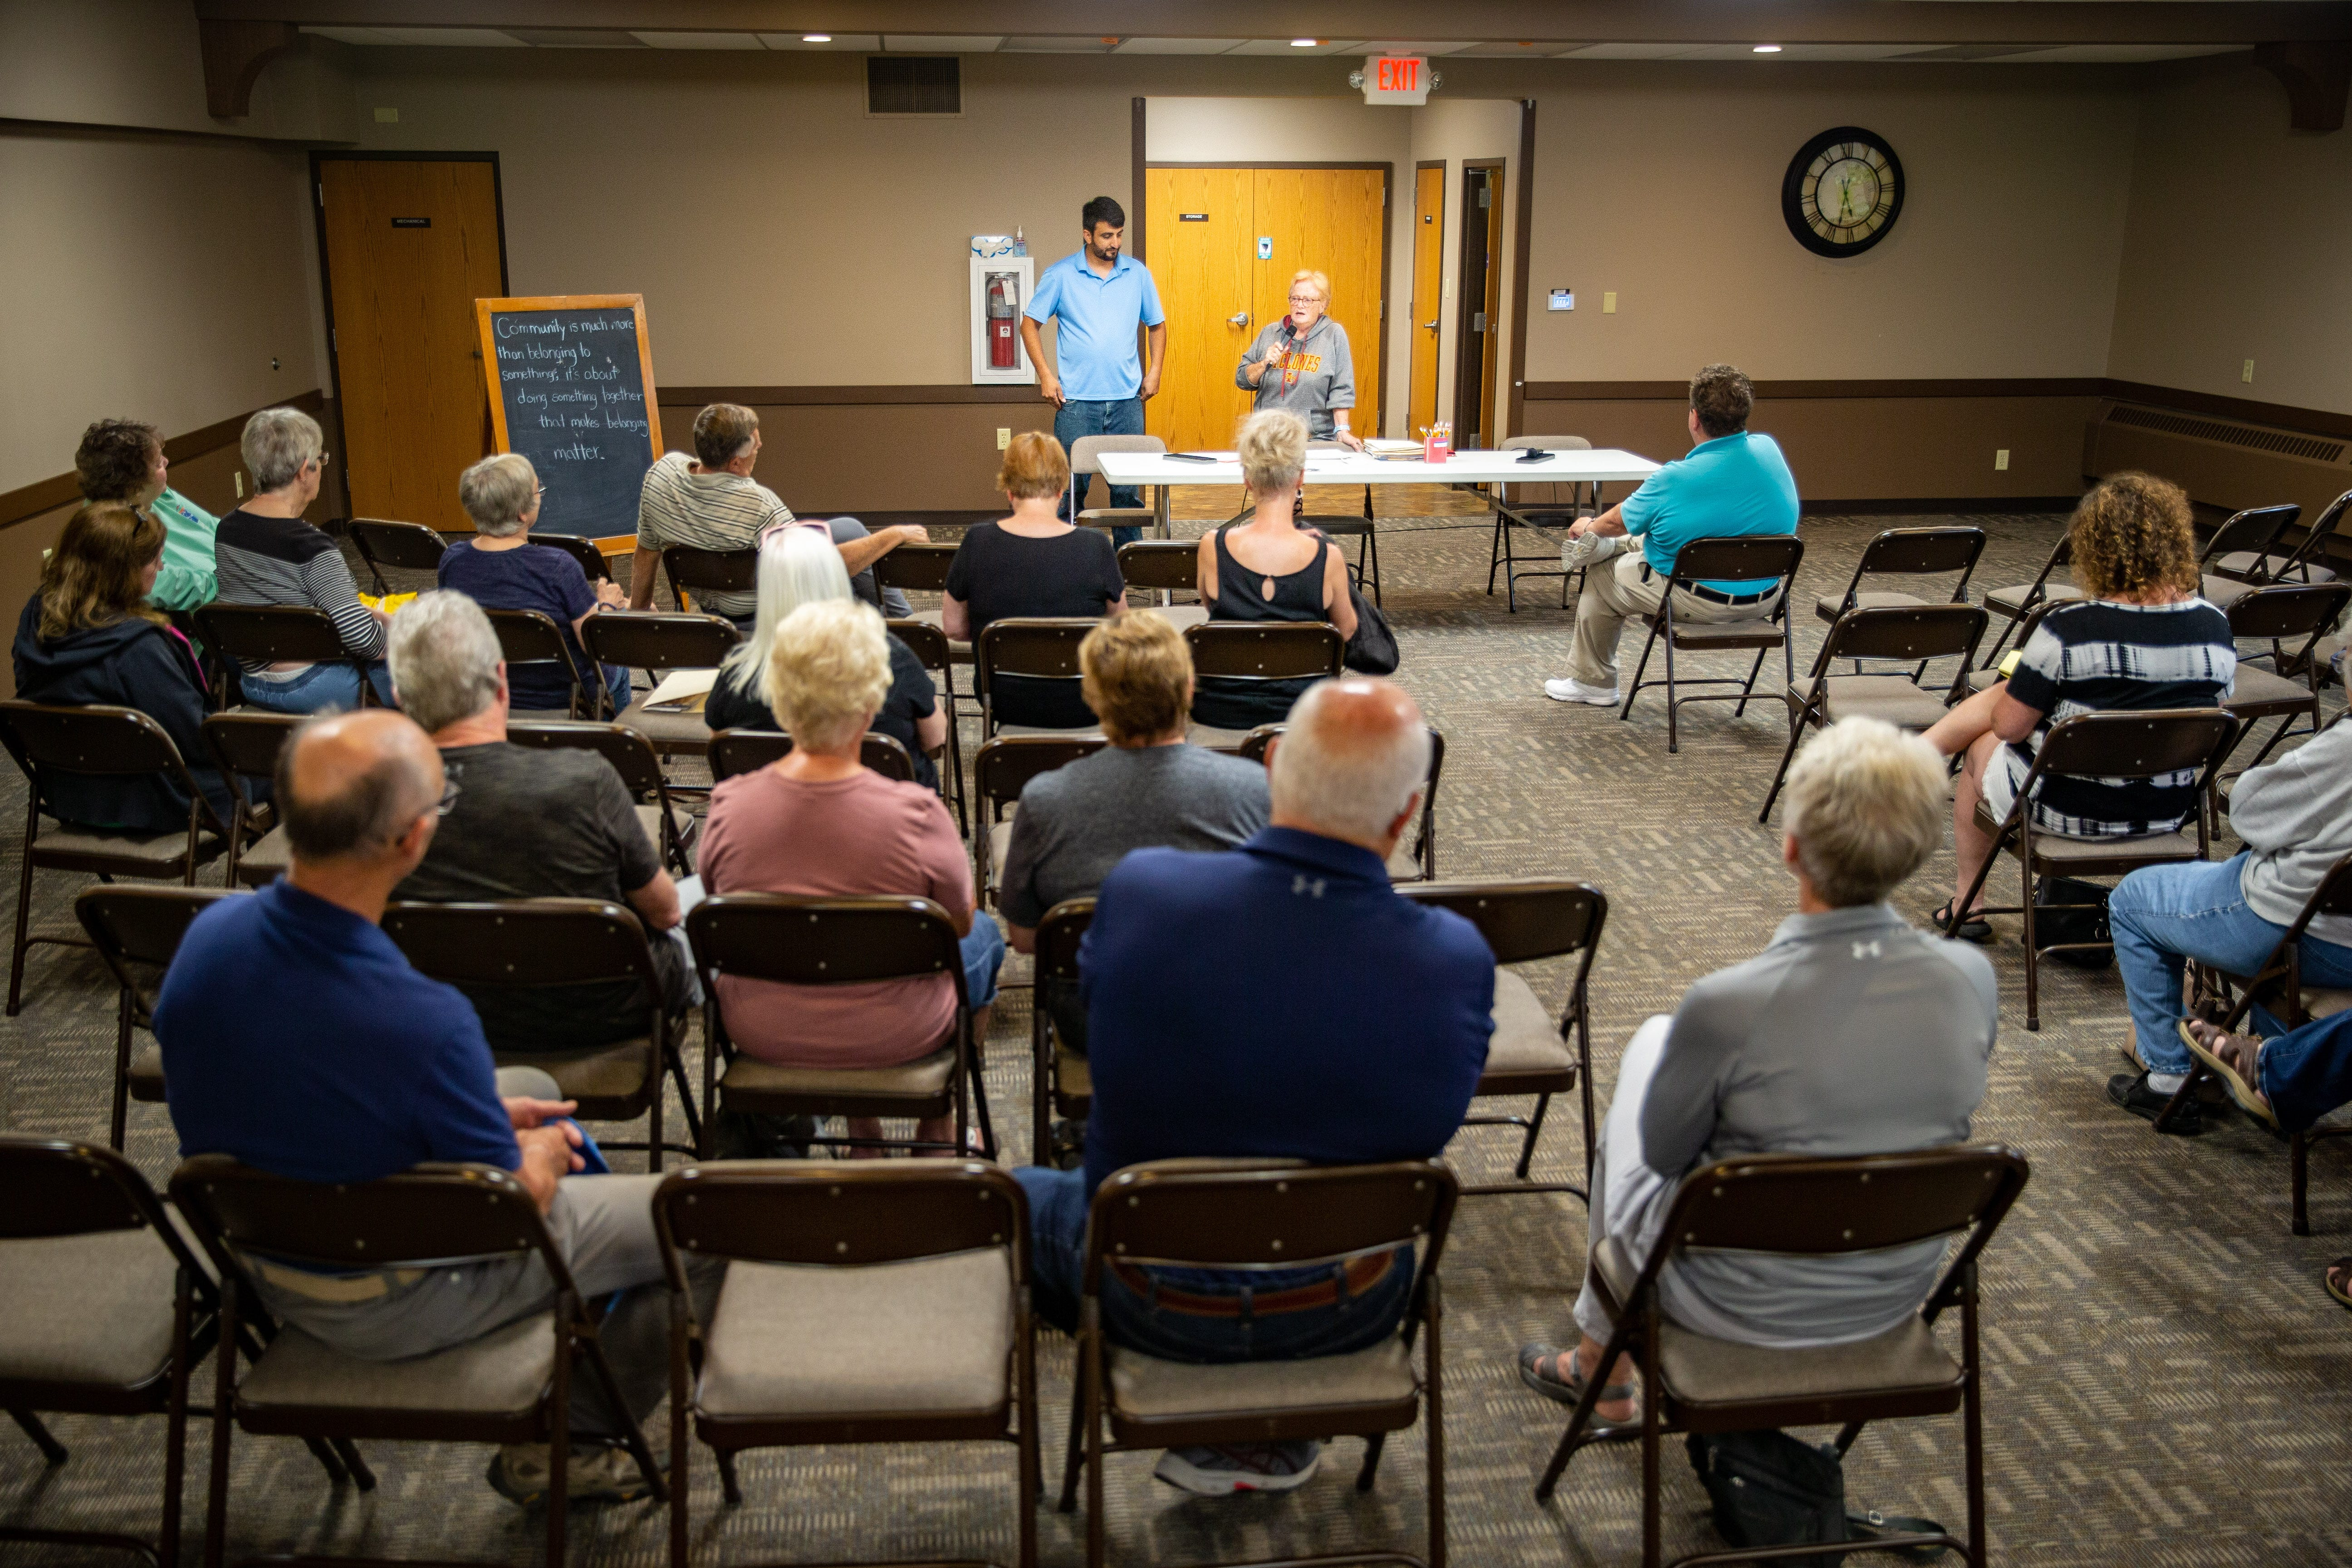 Community members gather at the First United Methodist Church in Iowa Falls to discuss ways to help Zalmay Niazy stay in the United States Tuesday, June 22, 2021. Born and raised in Afghanistan, Niazy worked as a translator for U.S. armed forces before moving to Iowa Falls.